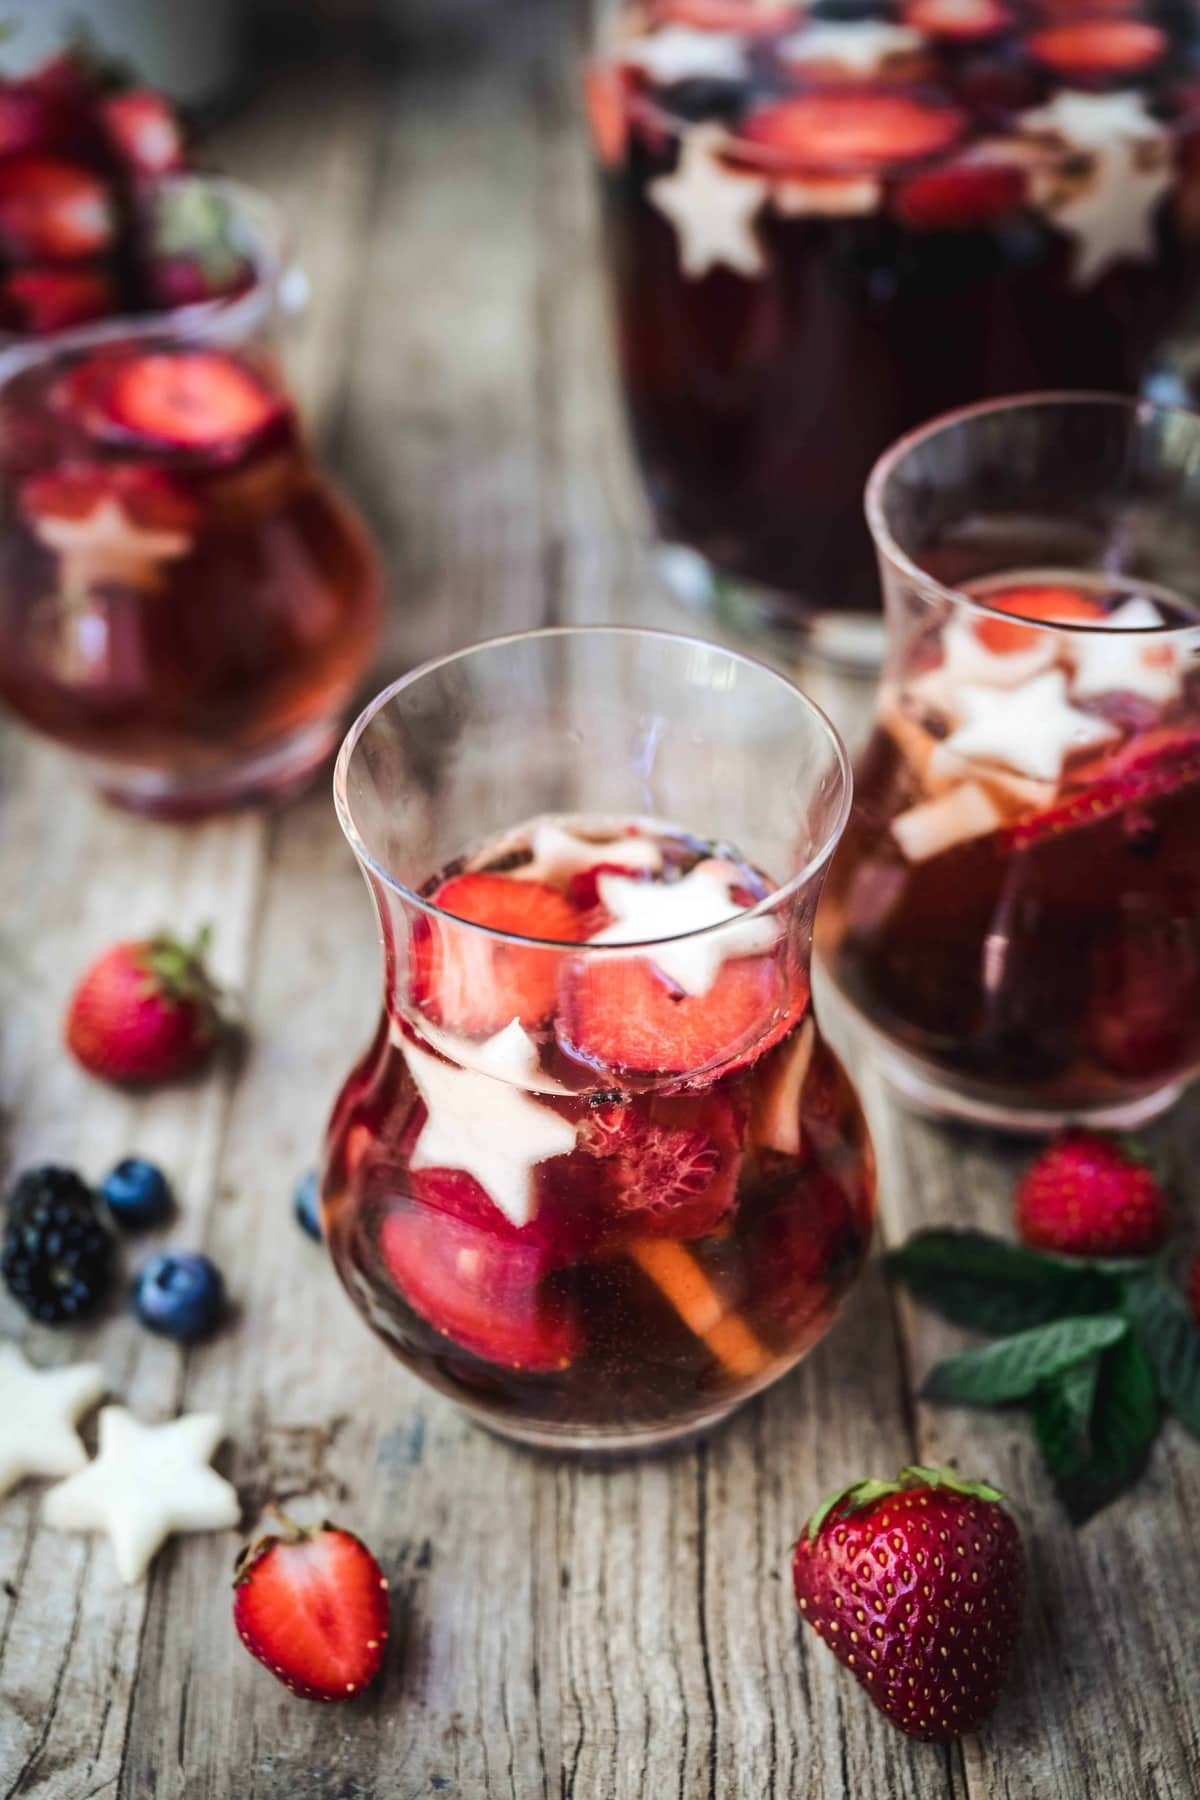 45 degree angle of red white and blue sangria with berries in glasses